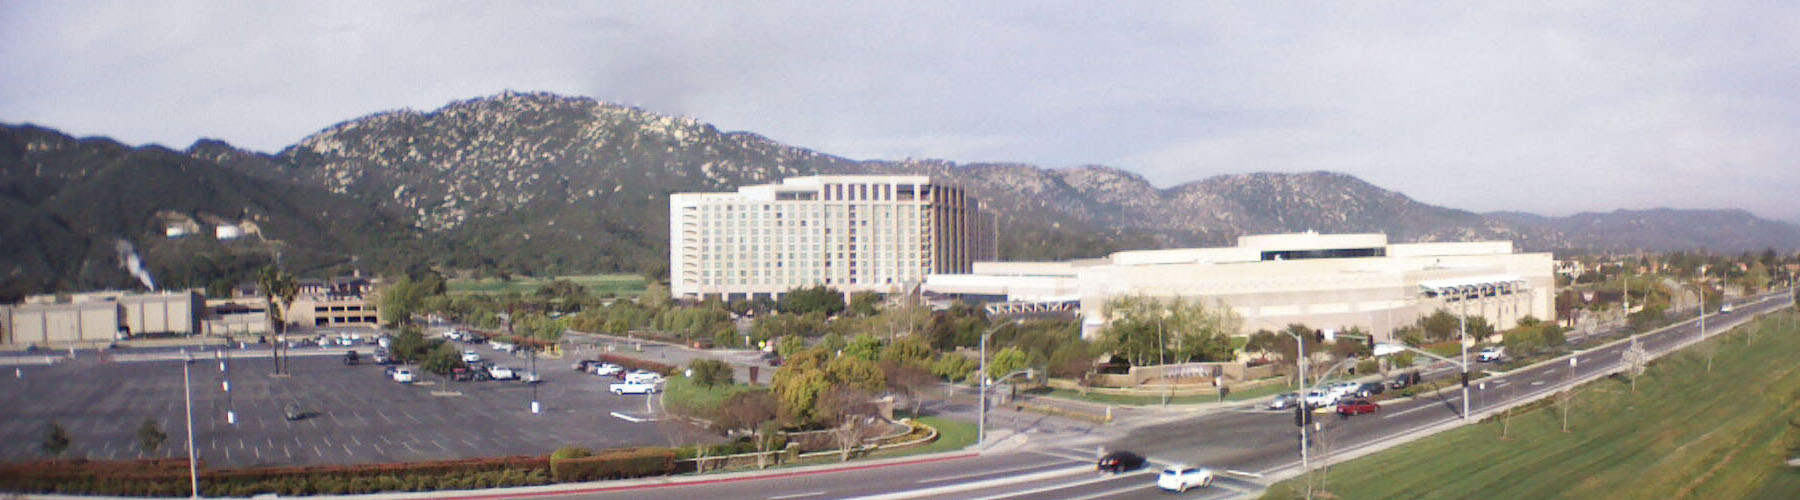 pala casino or pechanga